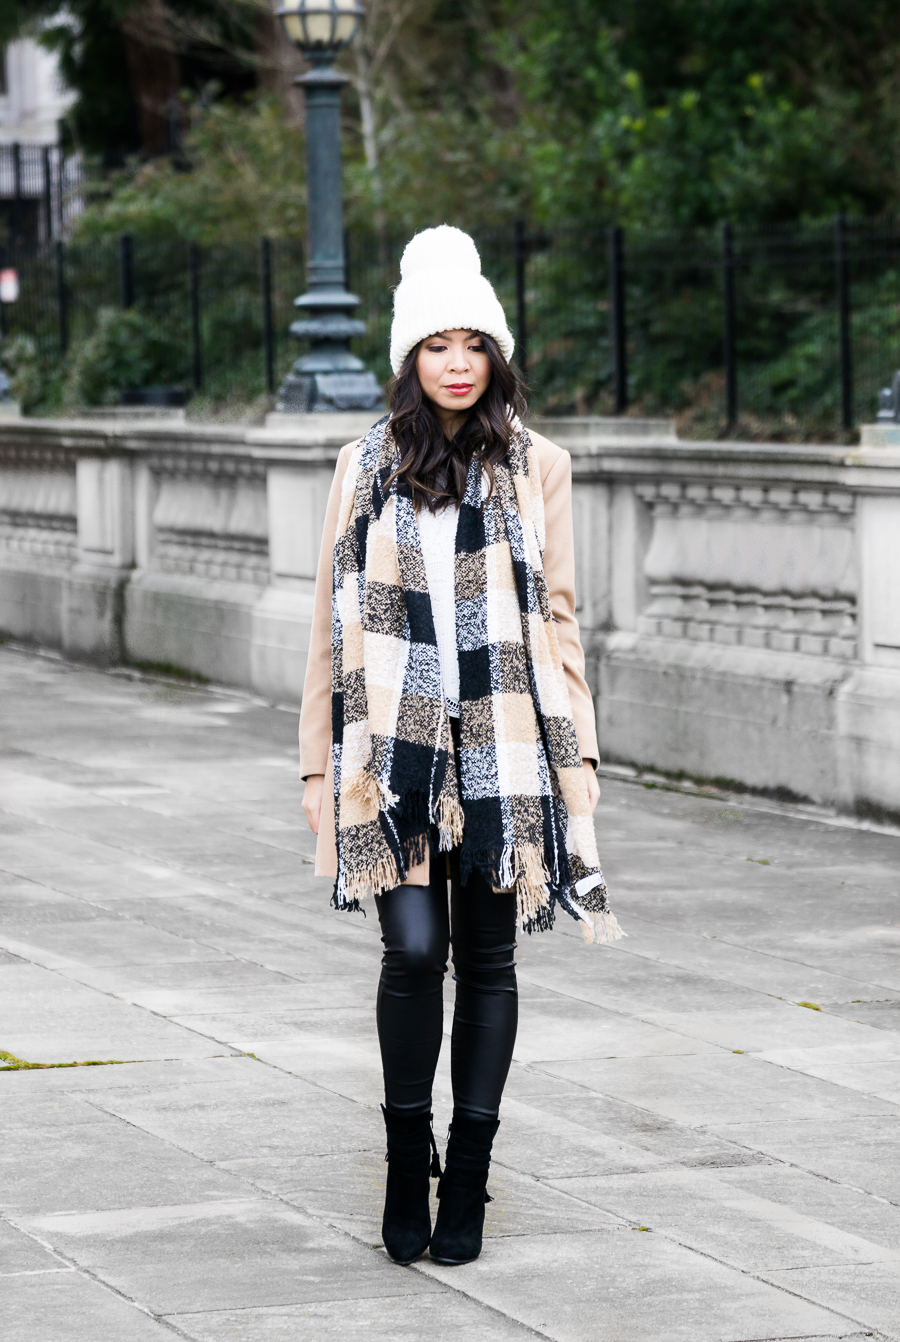 Camel coat outfit, winter chic outfit, pom pom beanie, plaid scarf, petite fashion blog